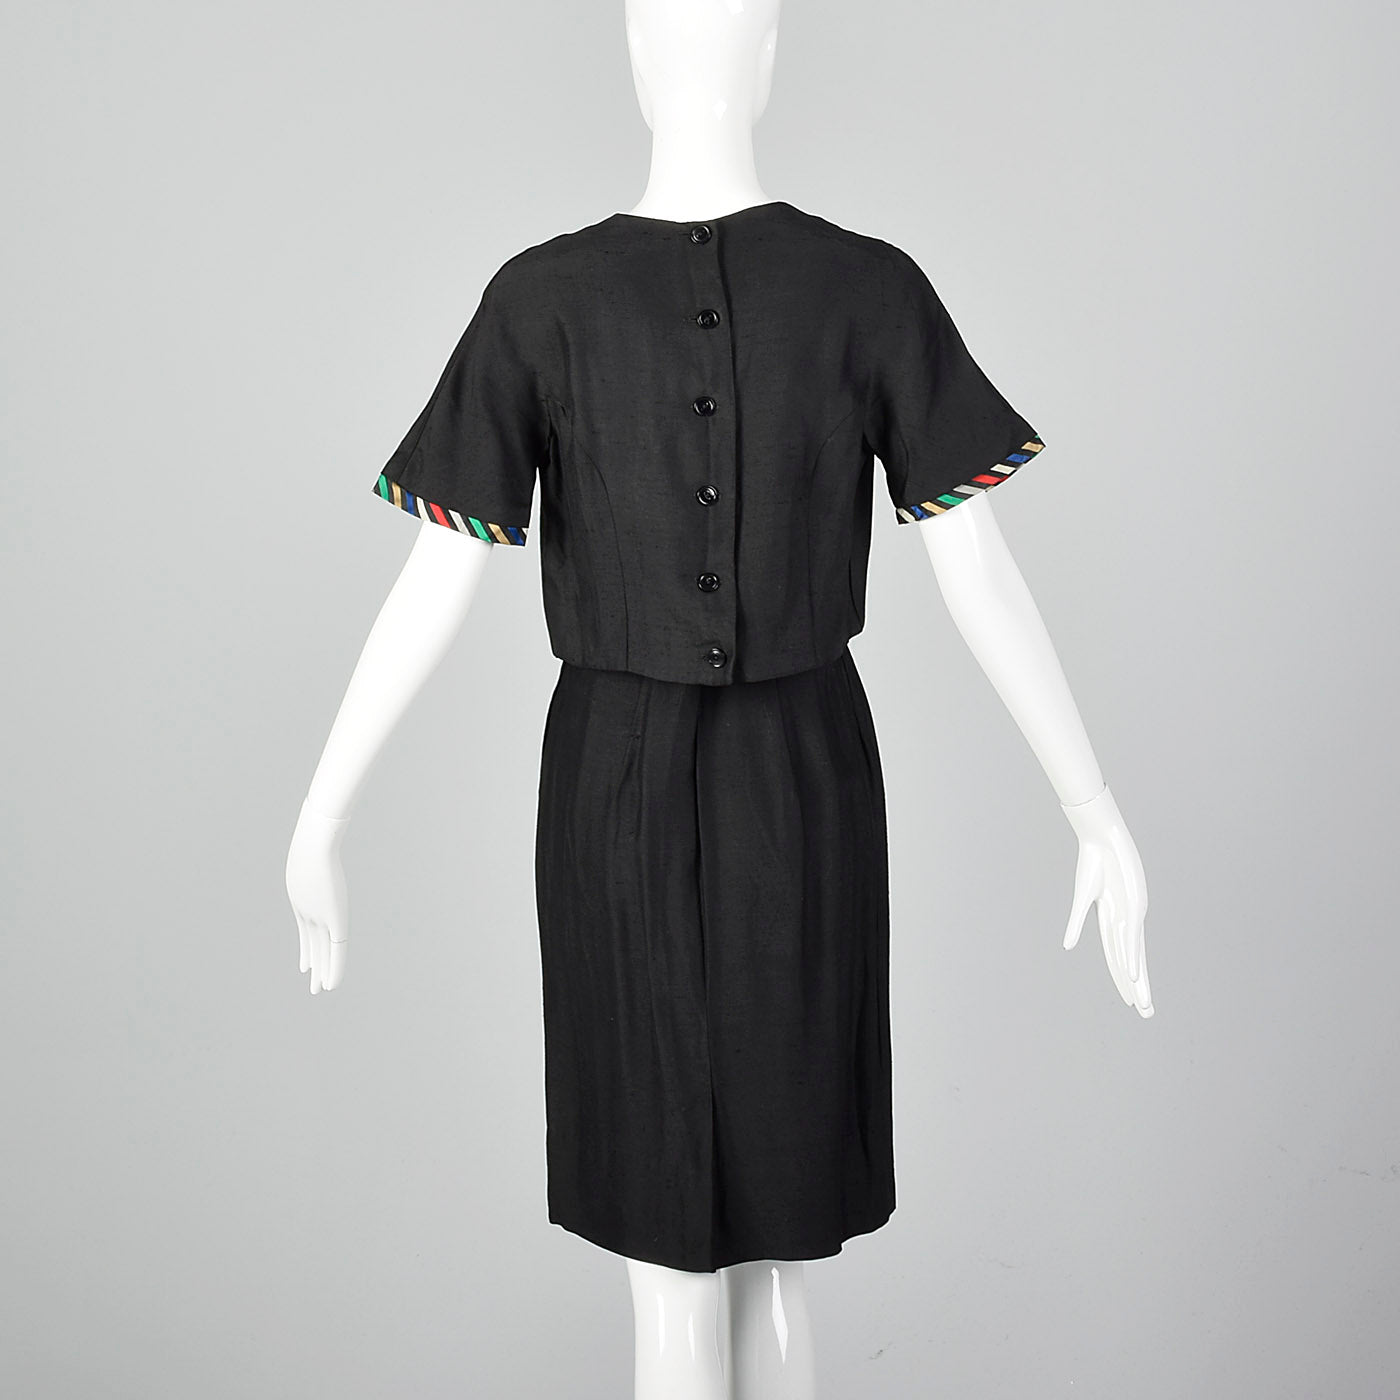 1960s Two Piece Skirt Suit with Ribbon Stripe Trim